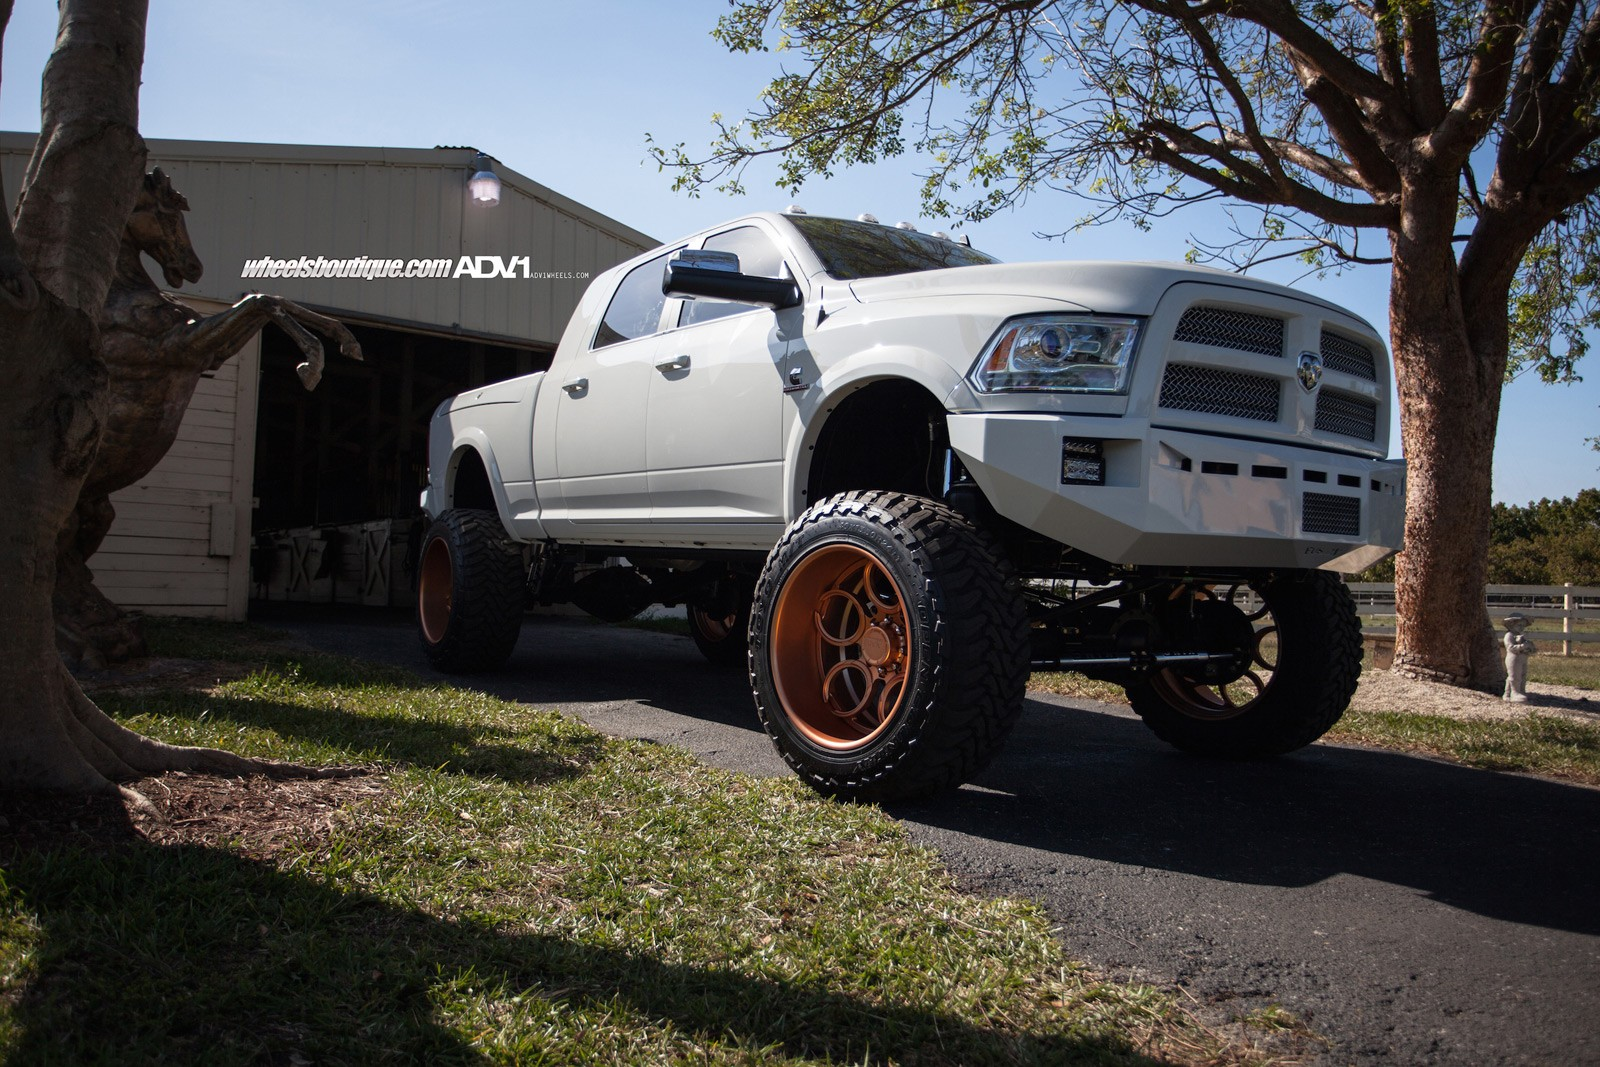 Chevy Truck Wheels >> Lifted Ram 2500 On Rose Gold Wheels Meets a Horse - autoevolution